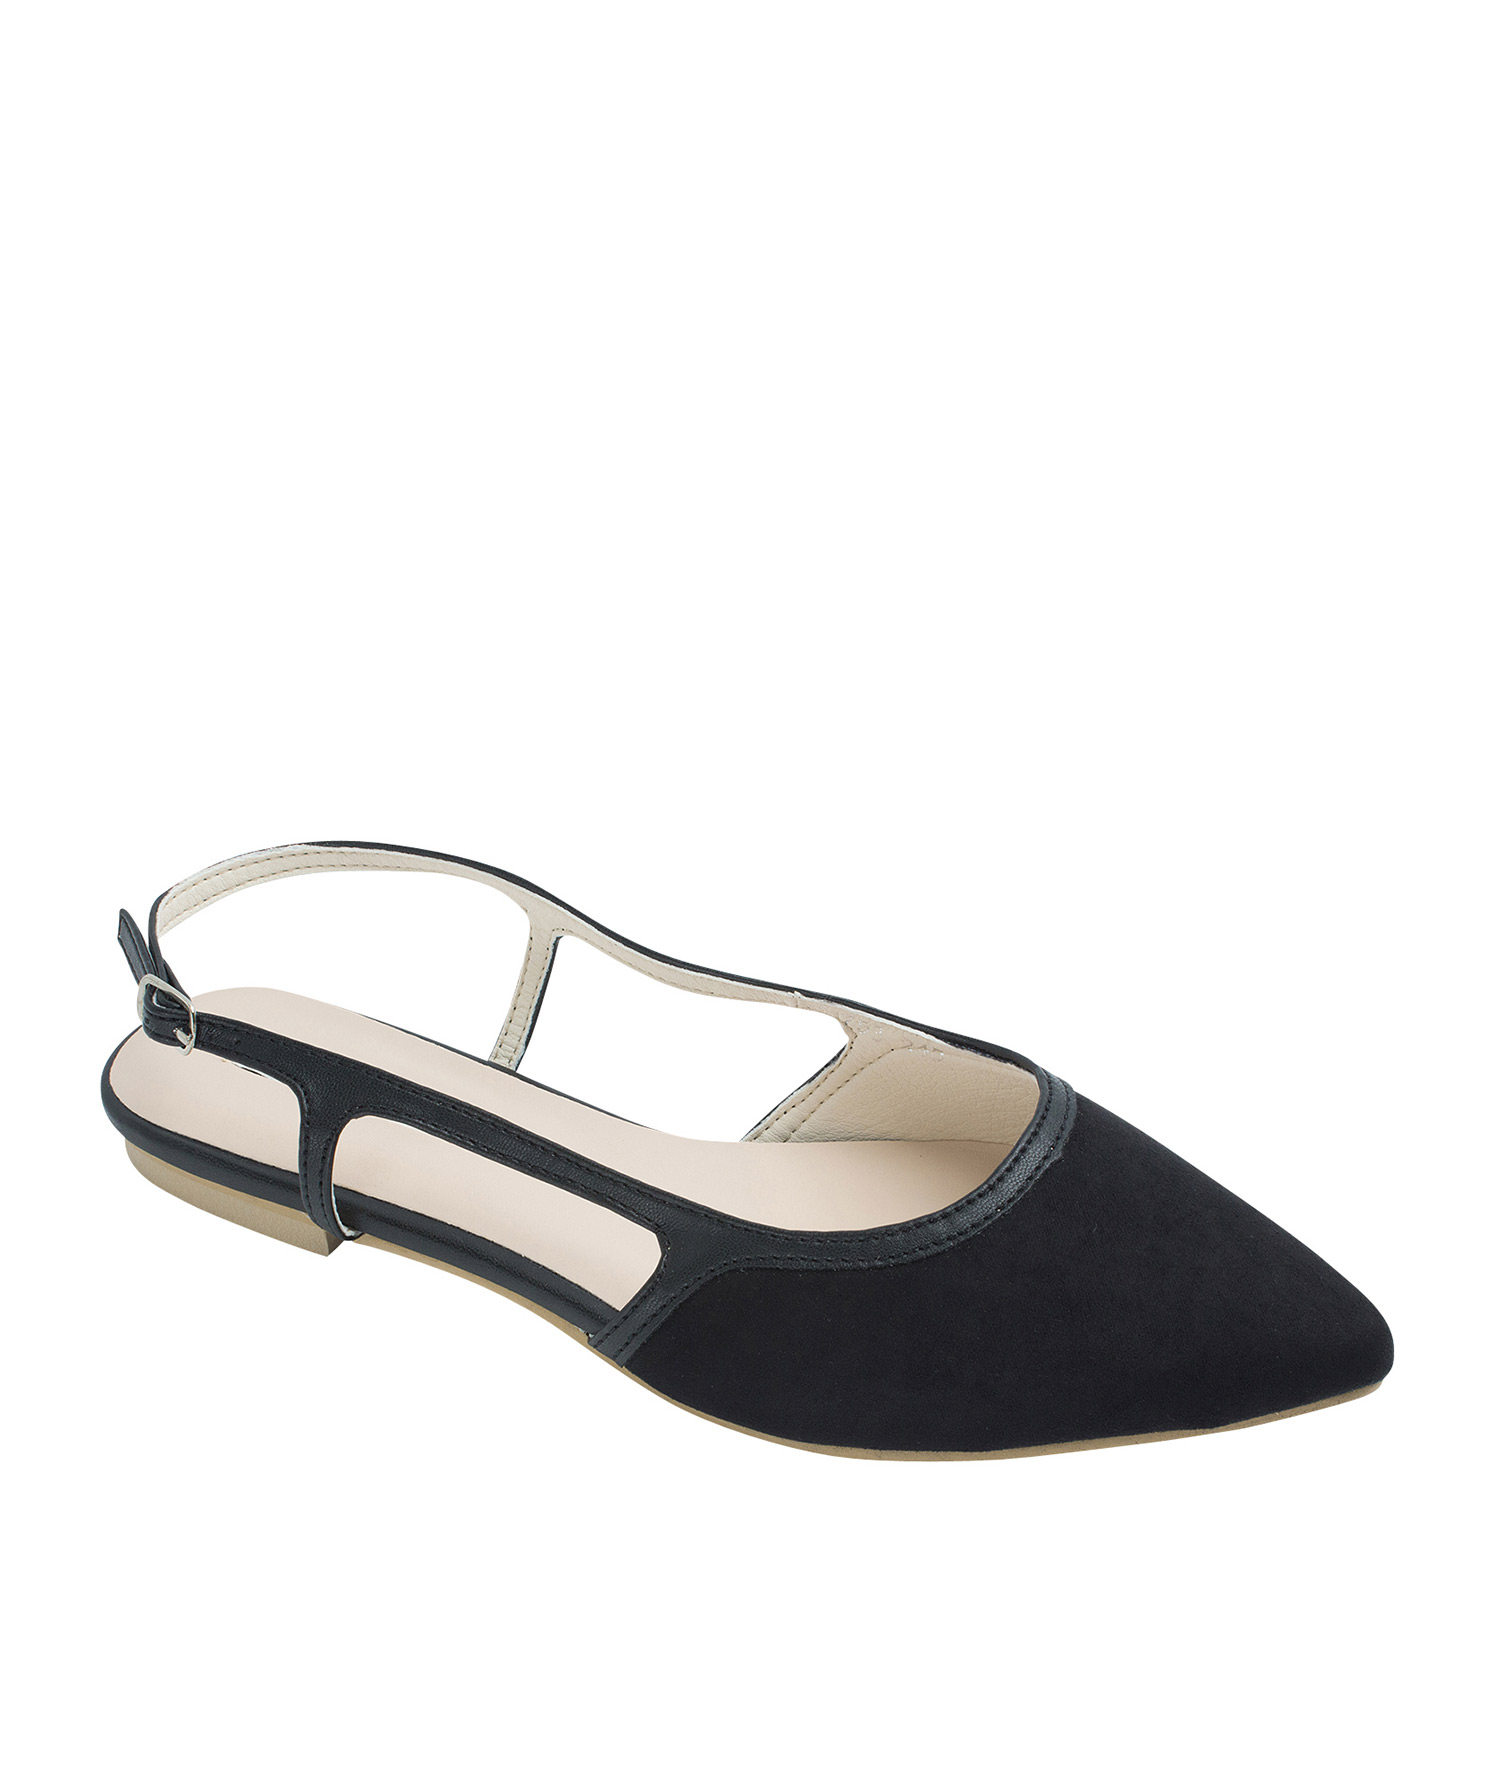 AnnaKastle Womens Faux Suede Pointed Toe Slingback Flats Black